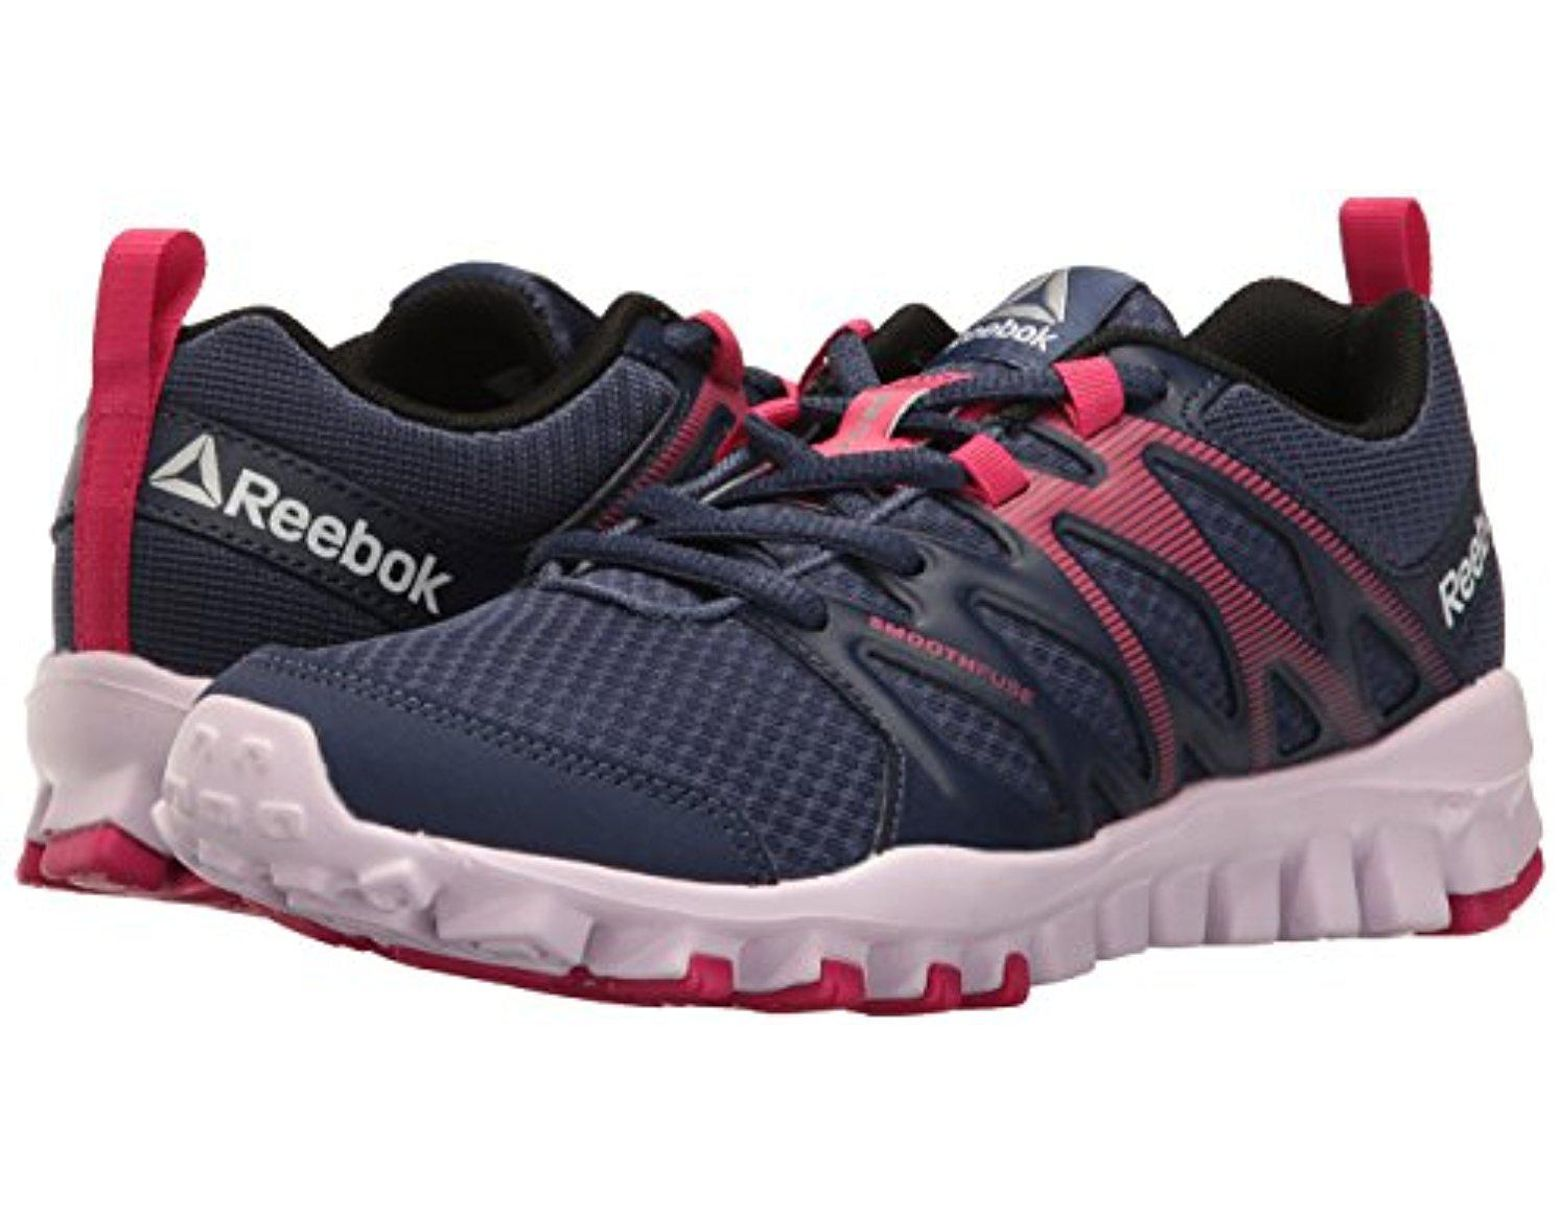 3ff04073bfaa Reebok Realflex Train 4.0 Cross-trainer Shoe in Blue - Save 20% - Lyst